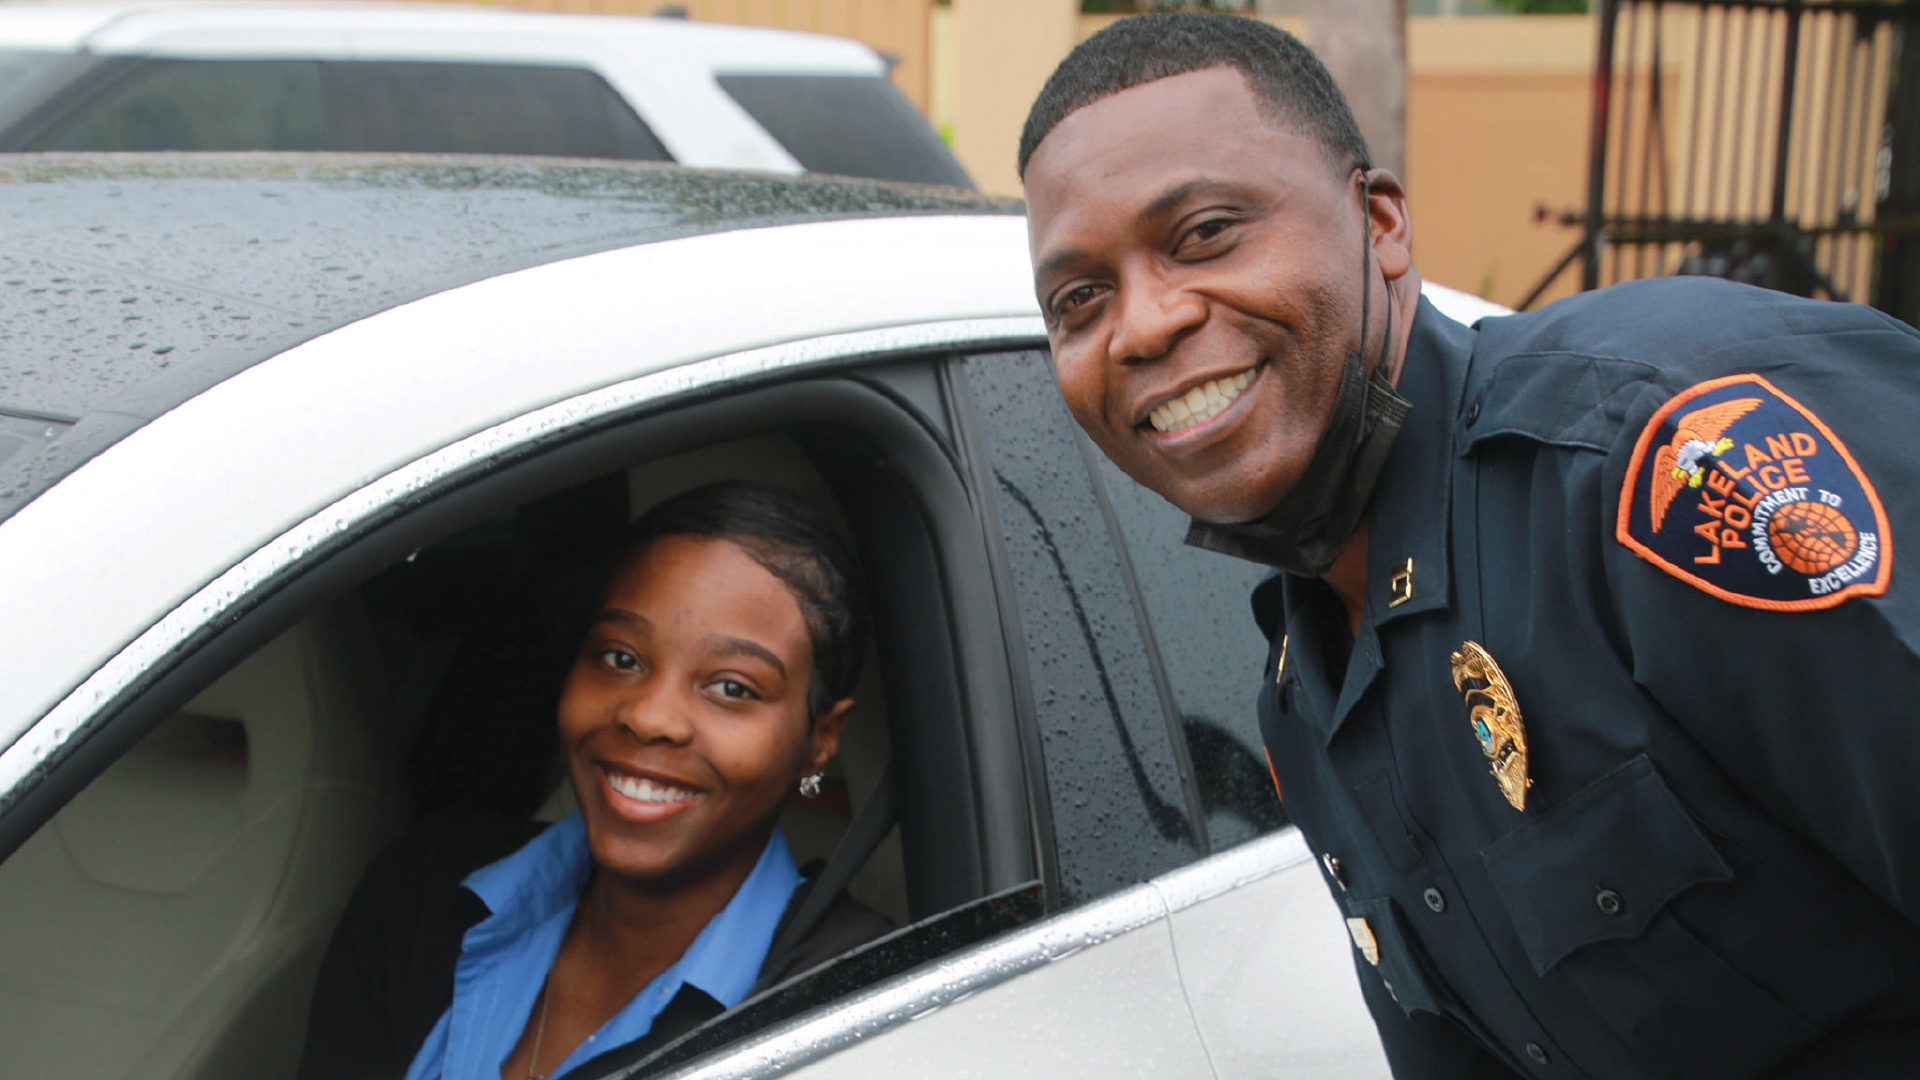 national-night-out-2021-7-lakeland-florida-police-department